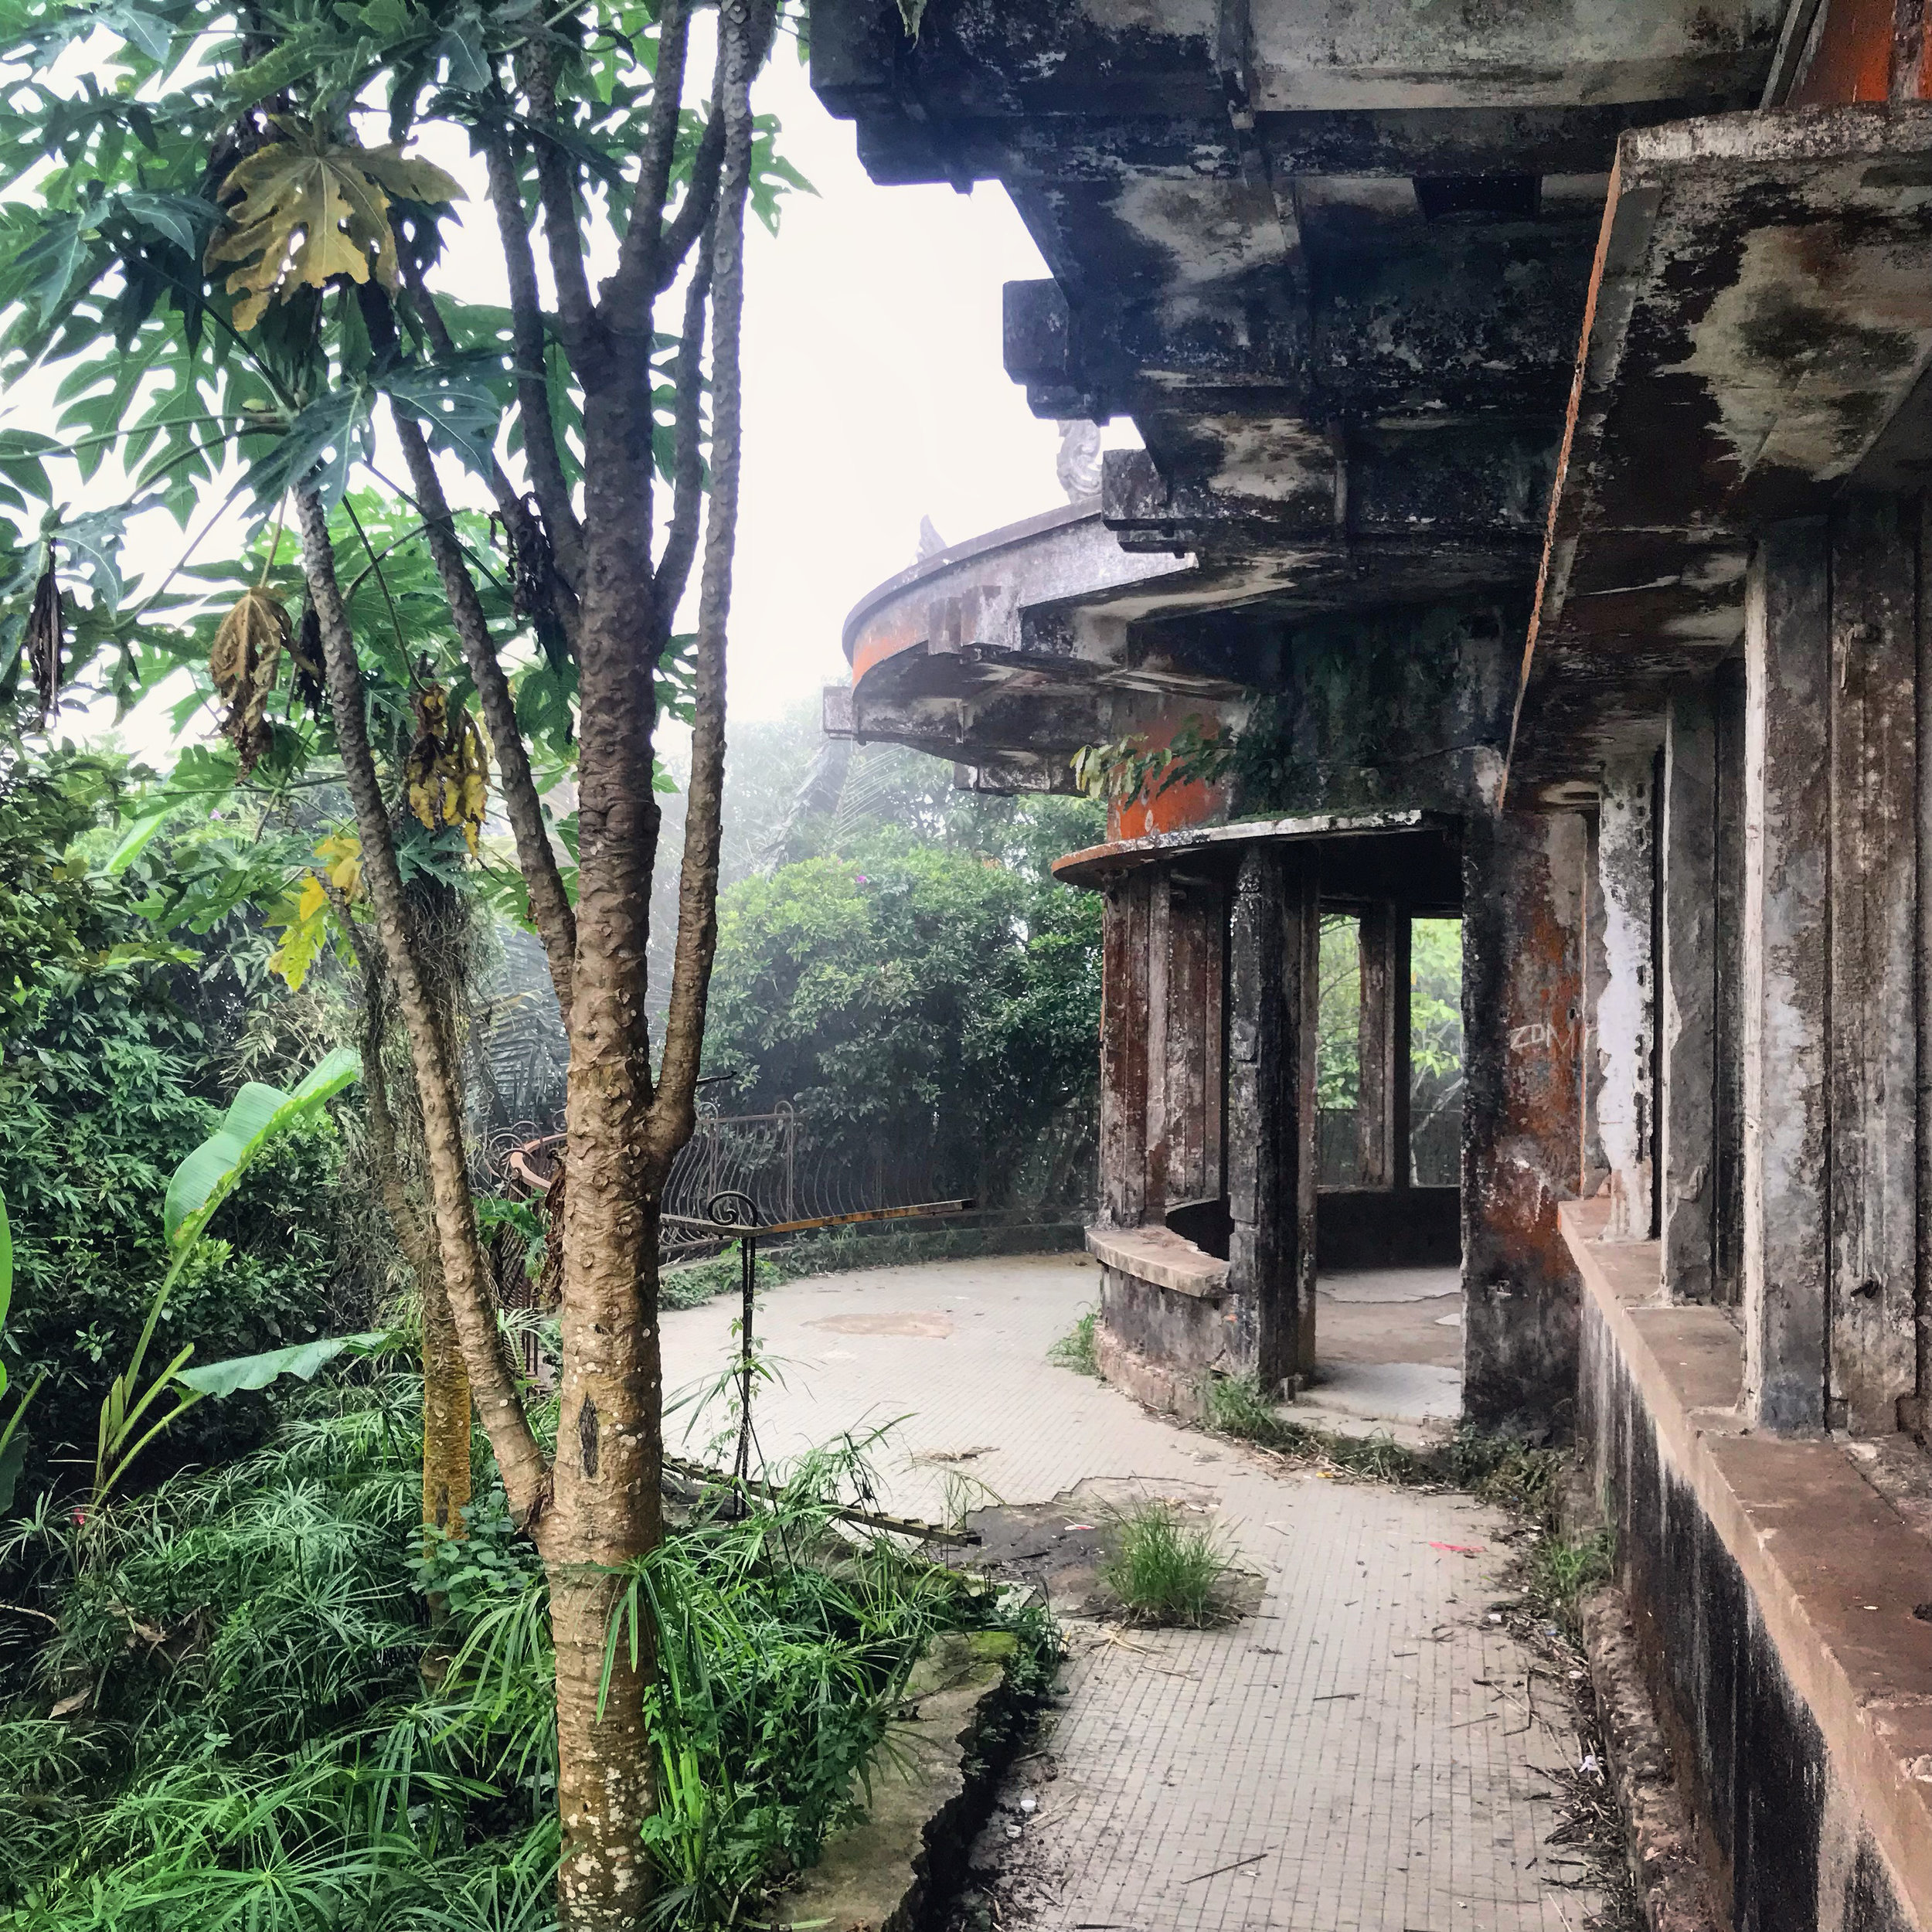 One of the crumbling old French Colonial buildings on Bokor Hill.